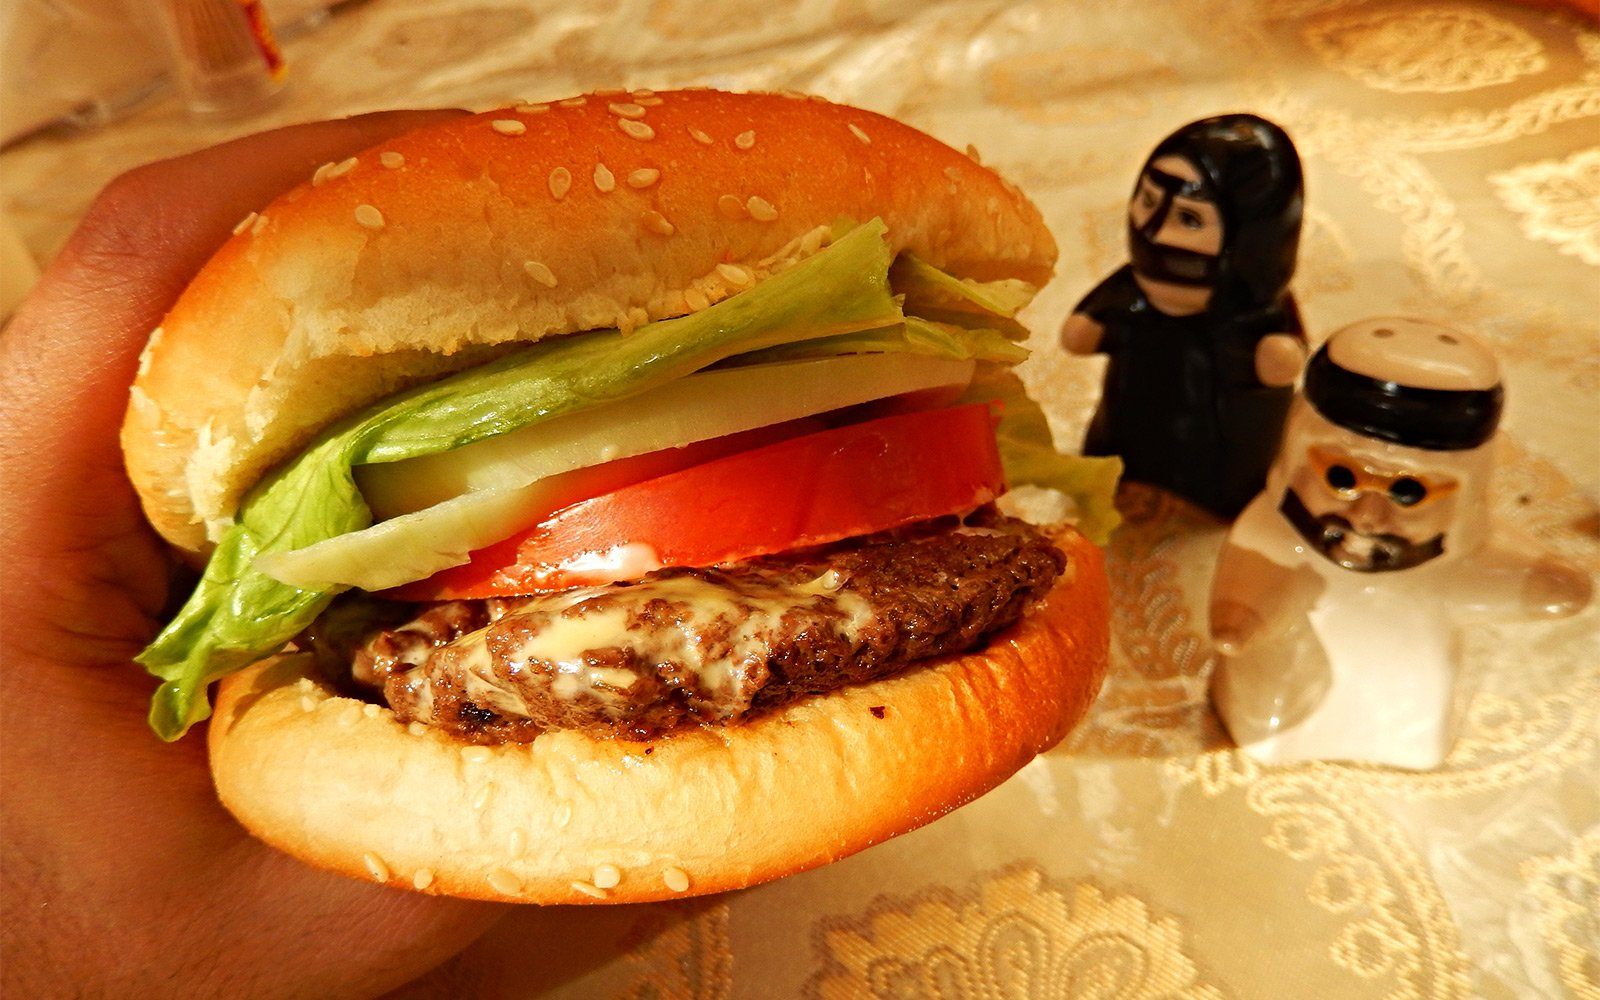 How to taste a camel burger – a sandwich with camel meat in Dubai